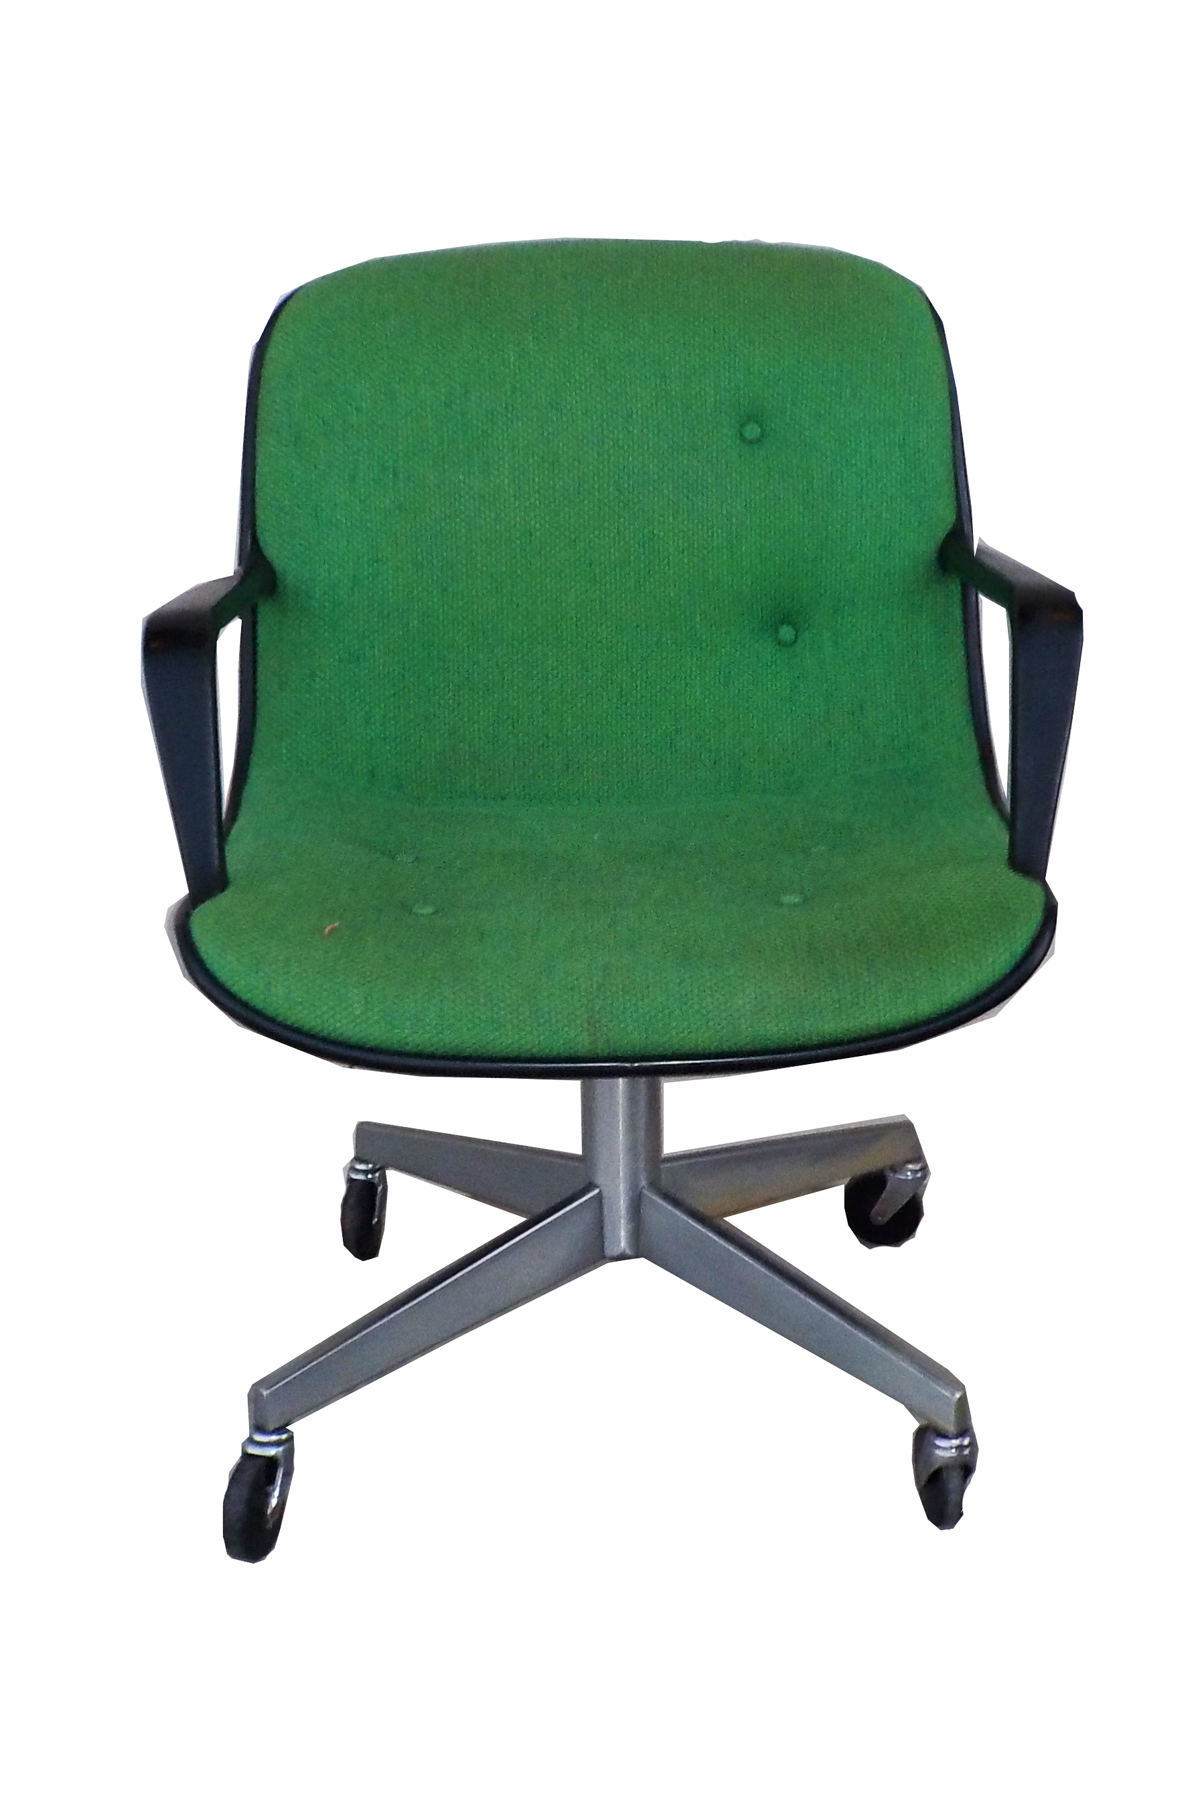 Green Desk Chairs steelcase desk chair